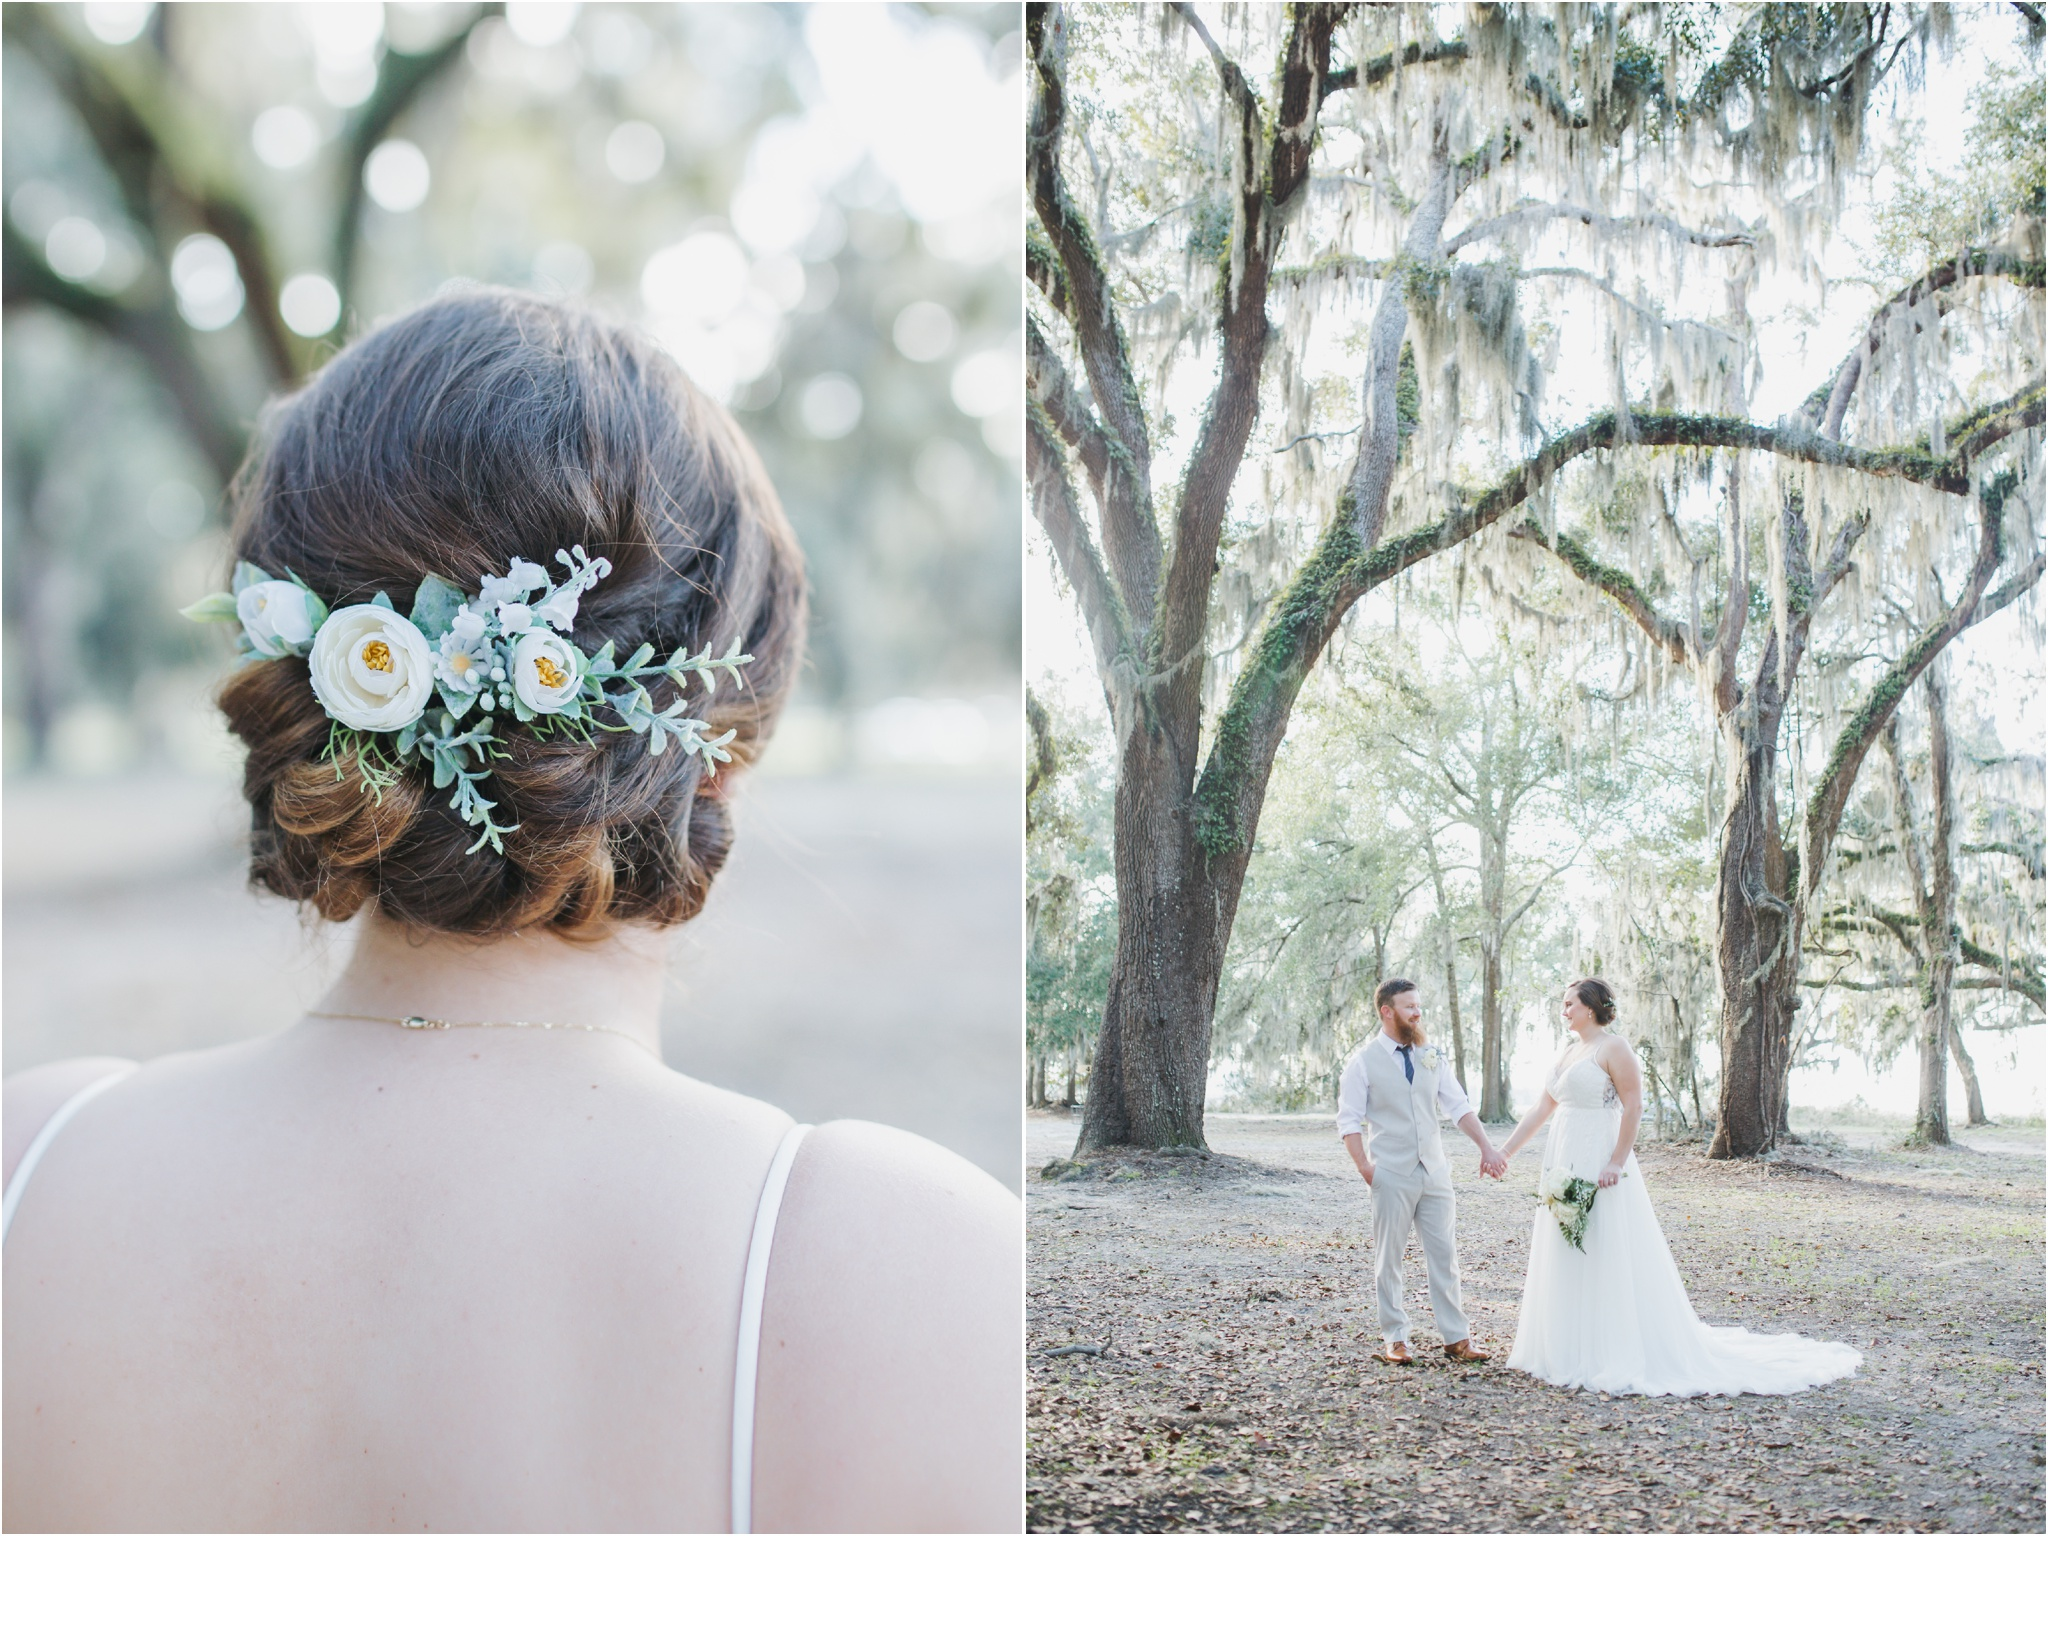 Rainey_Gregg_Photography_St._Simons_Island_Georgia_California_Wedding_Portrait_Photography_1723.jpg